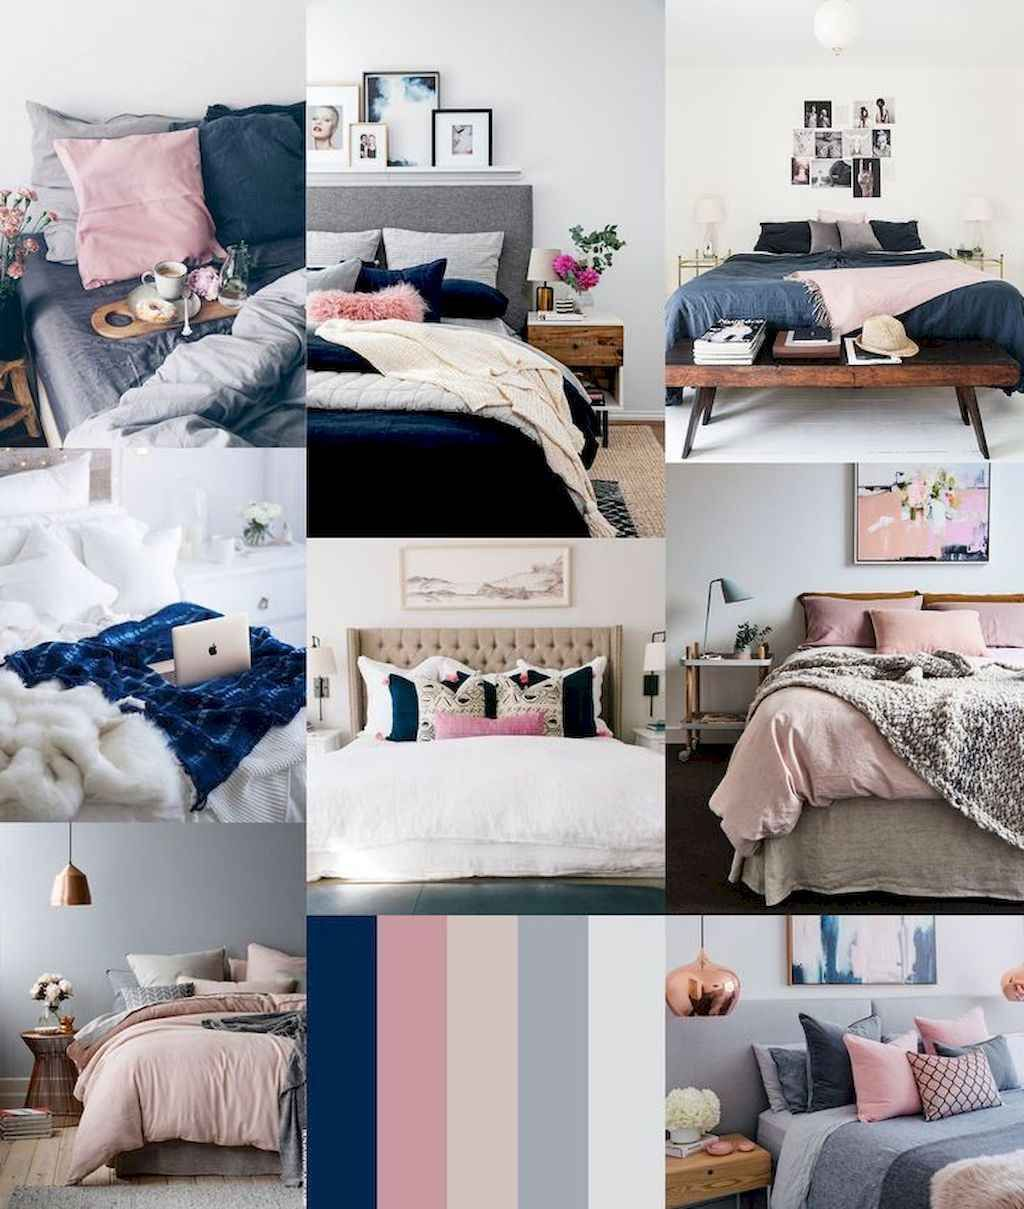 21 Simple Bedroom Decorating Ideas with Beautiful Color